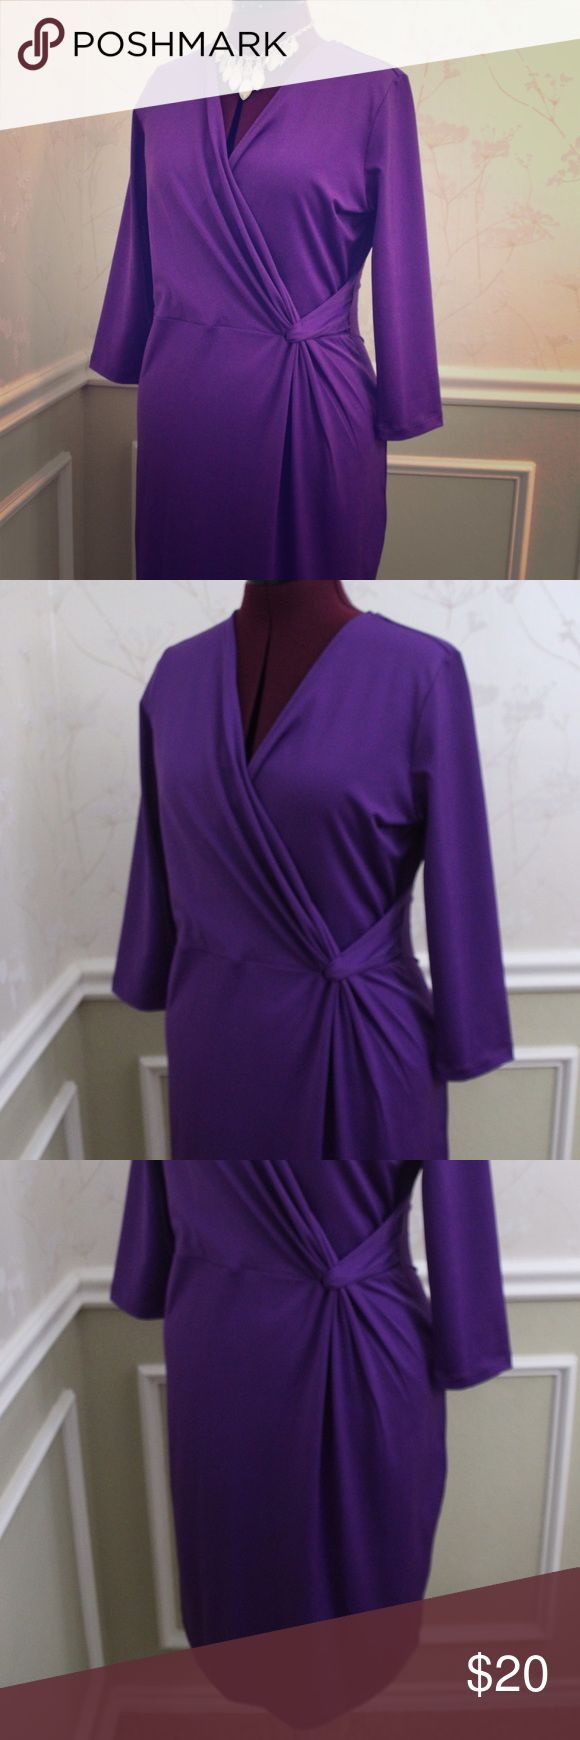 Long sleeve faux wrap dress Step out in this classic, conservative dress in a bold gem color! This amethyst beauty is knit and knee length. Dress it up with statement jewelry or dress it down with a casual jacket and boots! Peter Nygard Dresses Midi